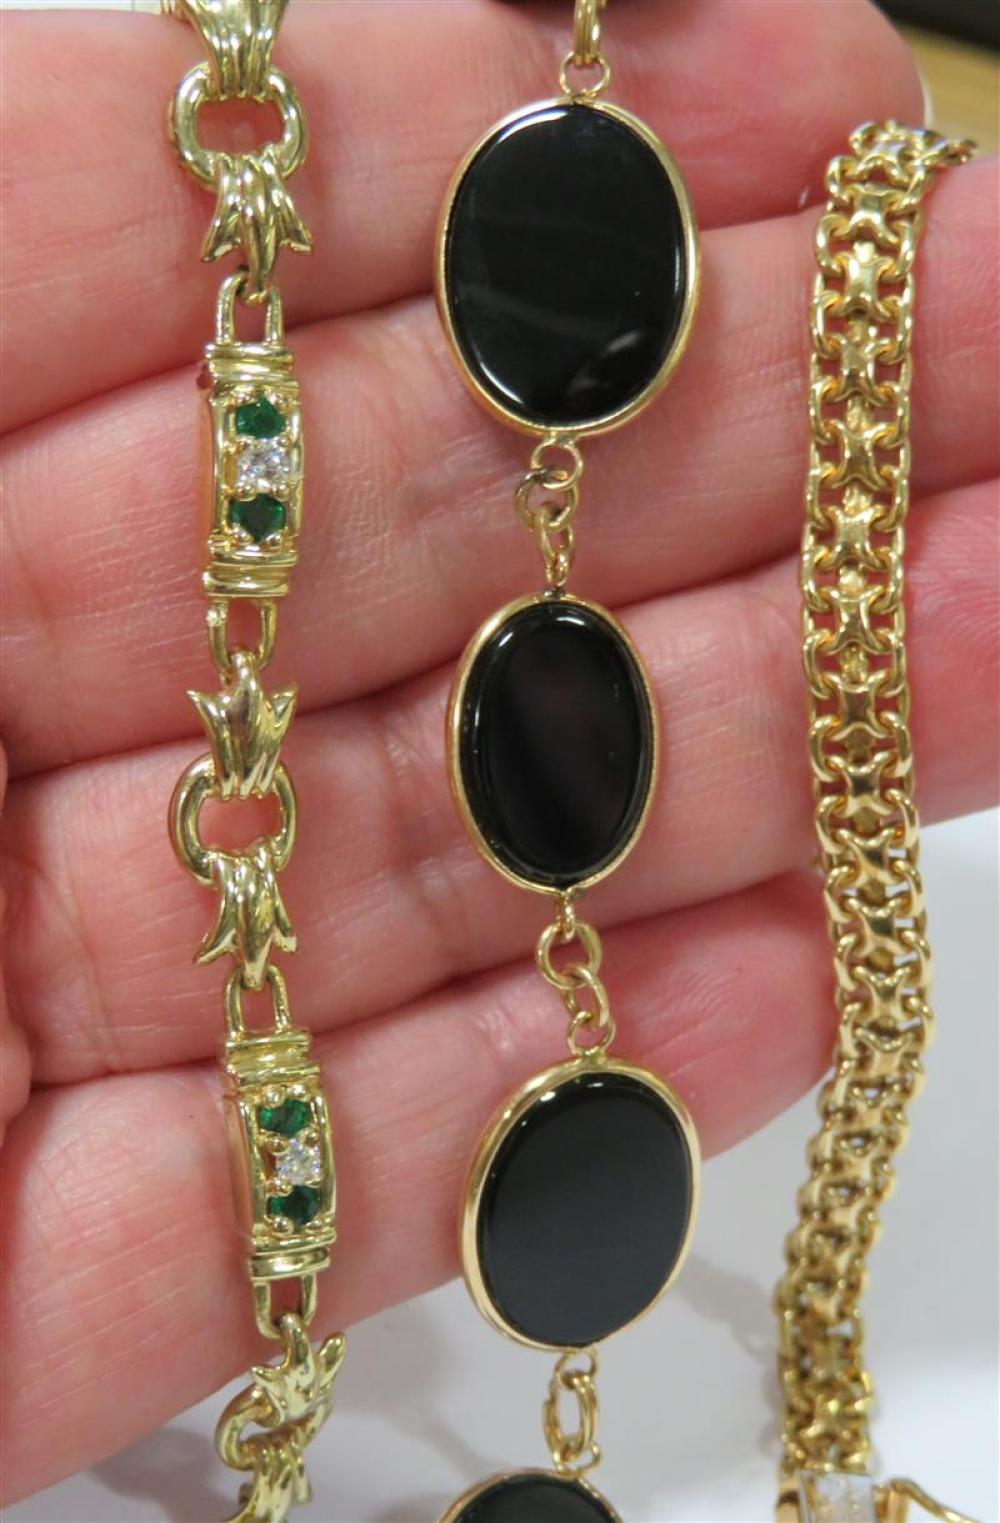 Gemstone, diamond and gold bracelets (4pcs)